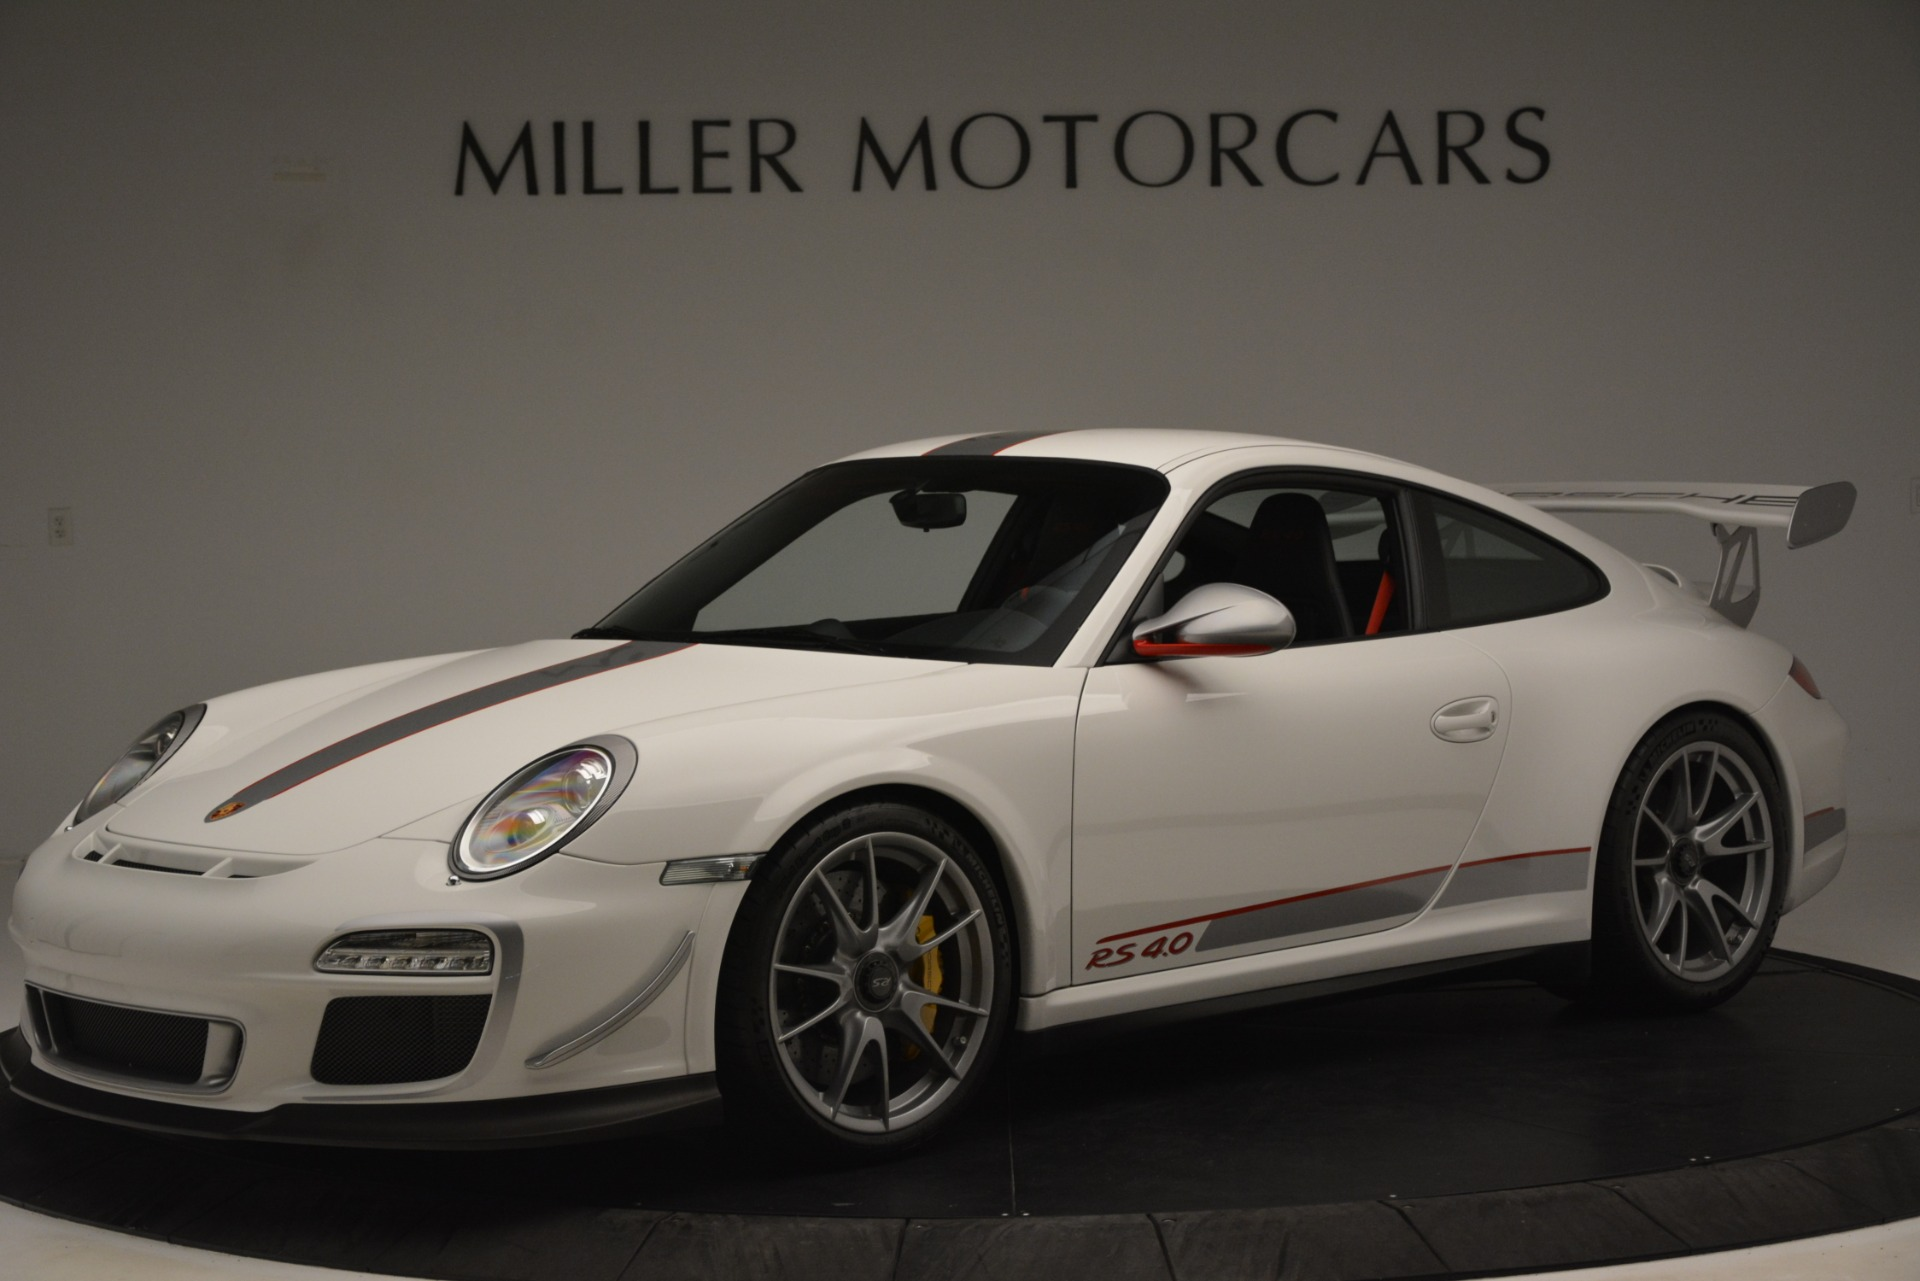 Used 2011 Porsche 911 GT3 RS 4.0 For Sale In Greenwich, CT 3188_p2